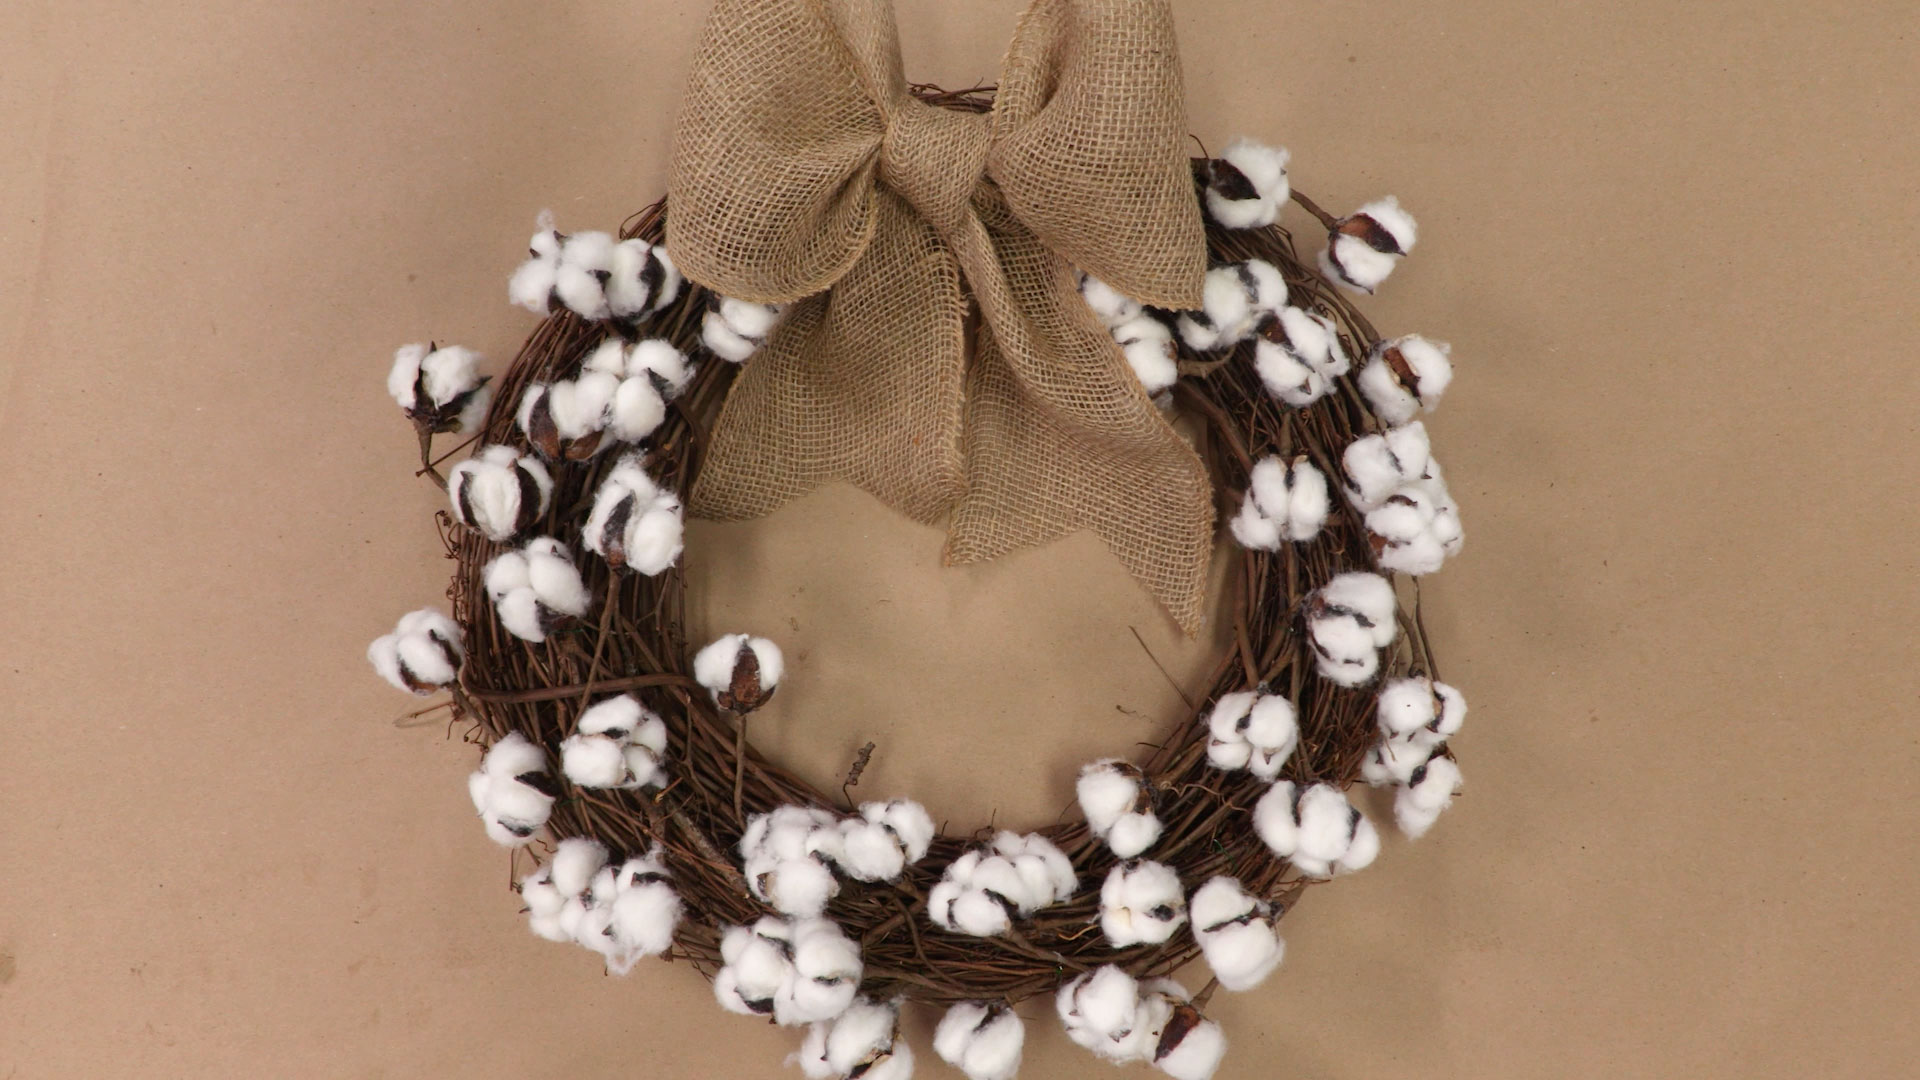 Cotton Boll Wreath